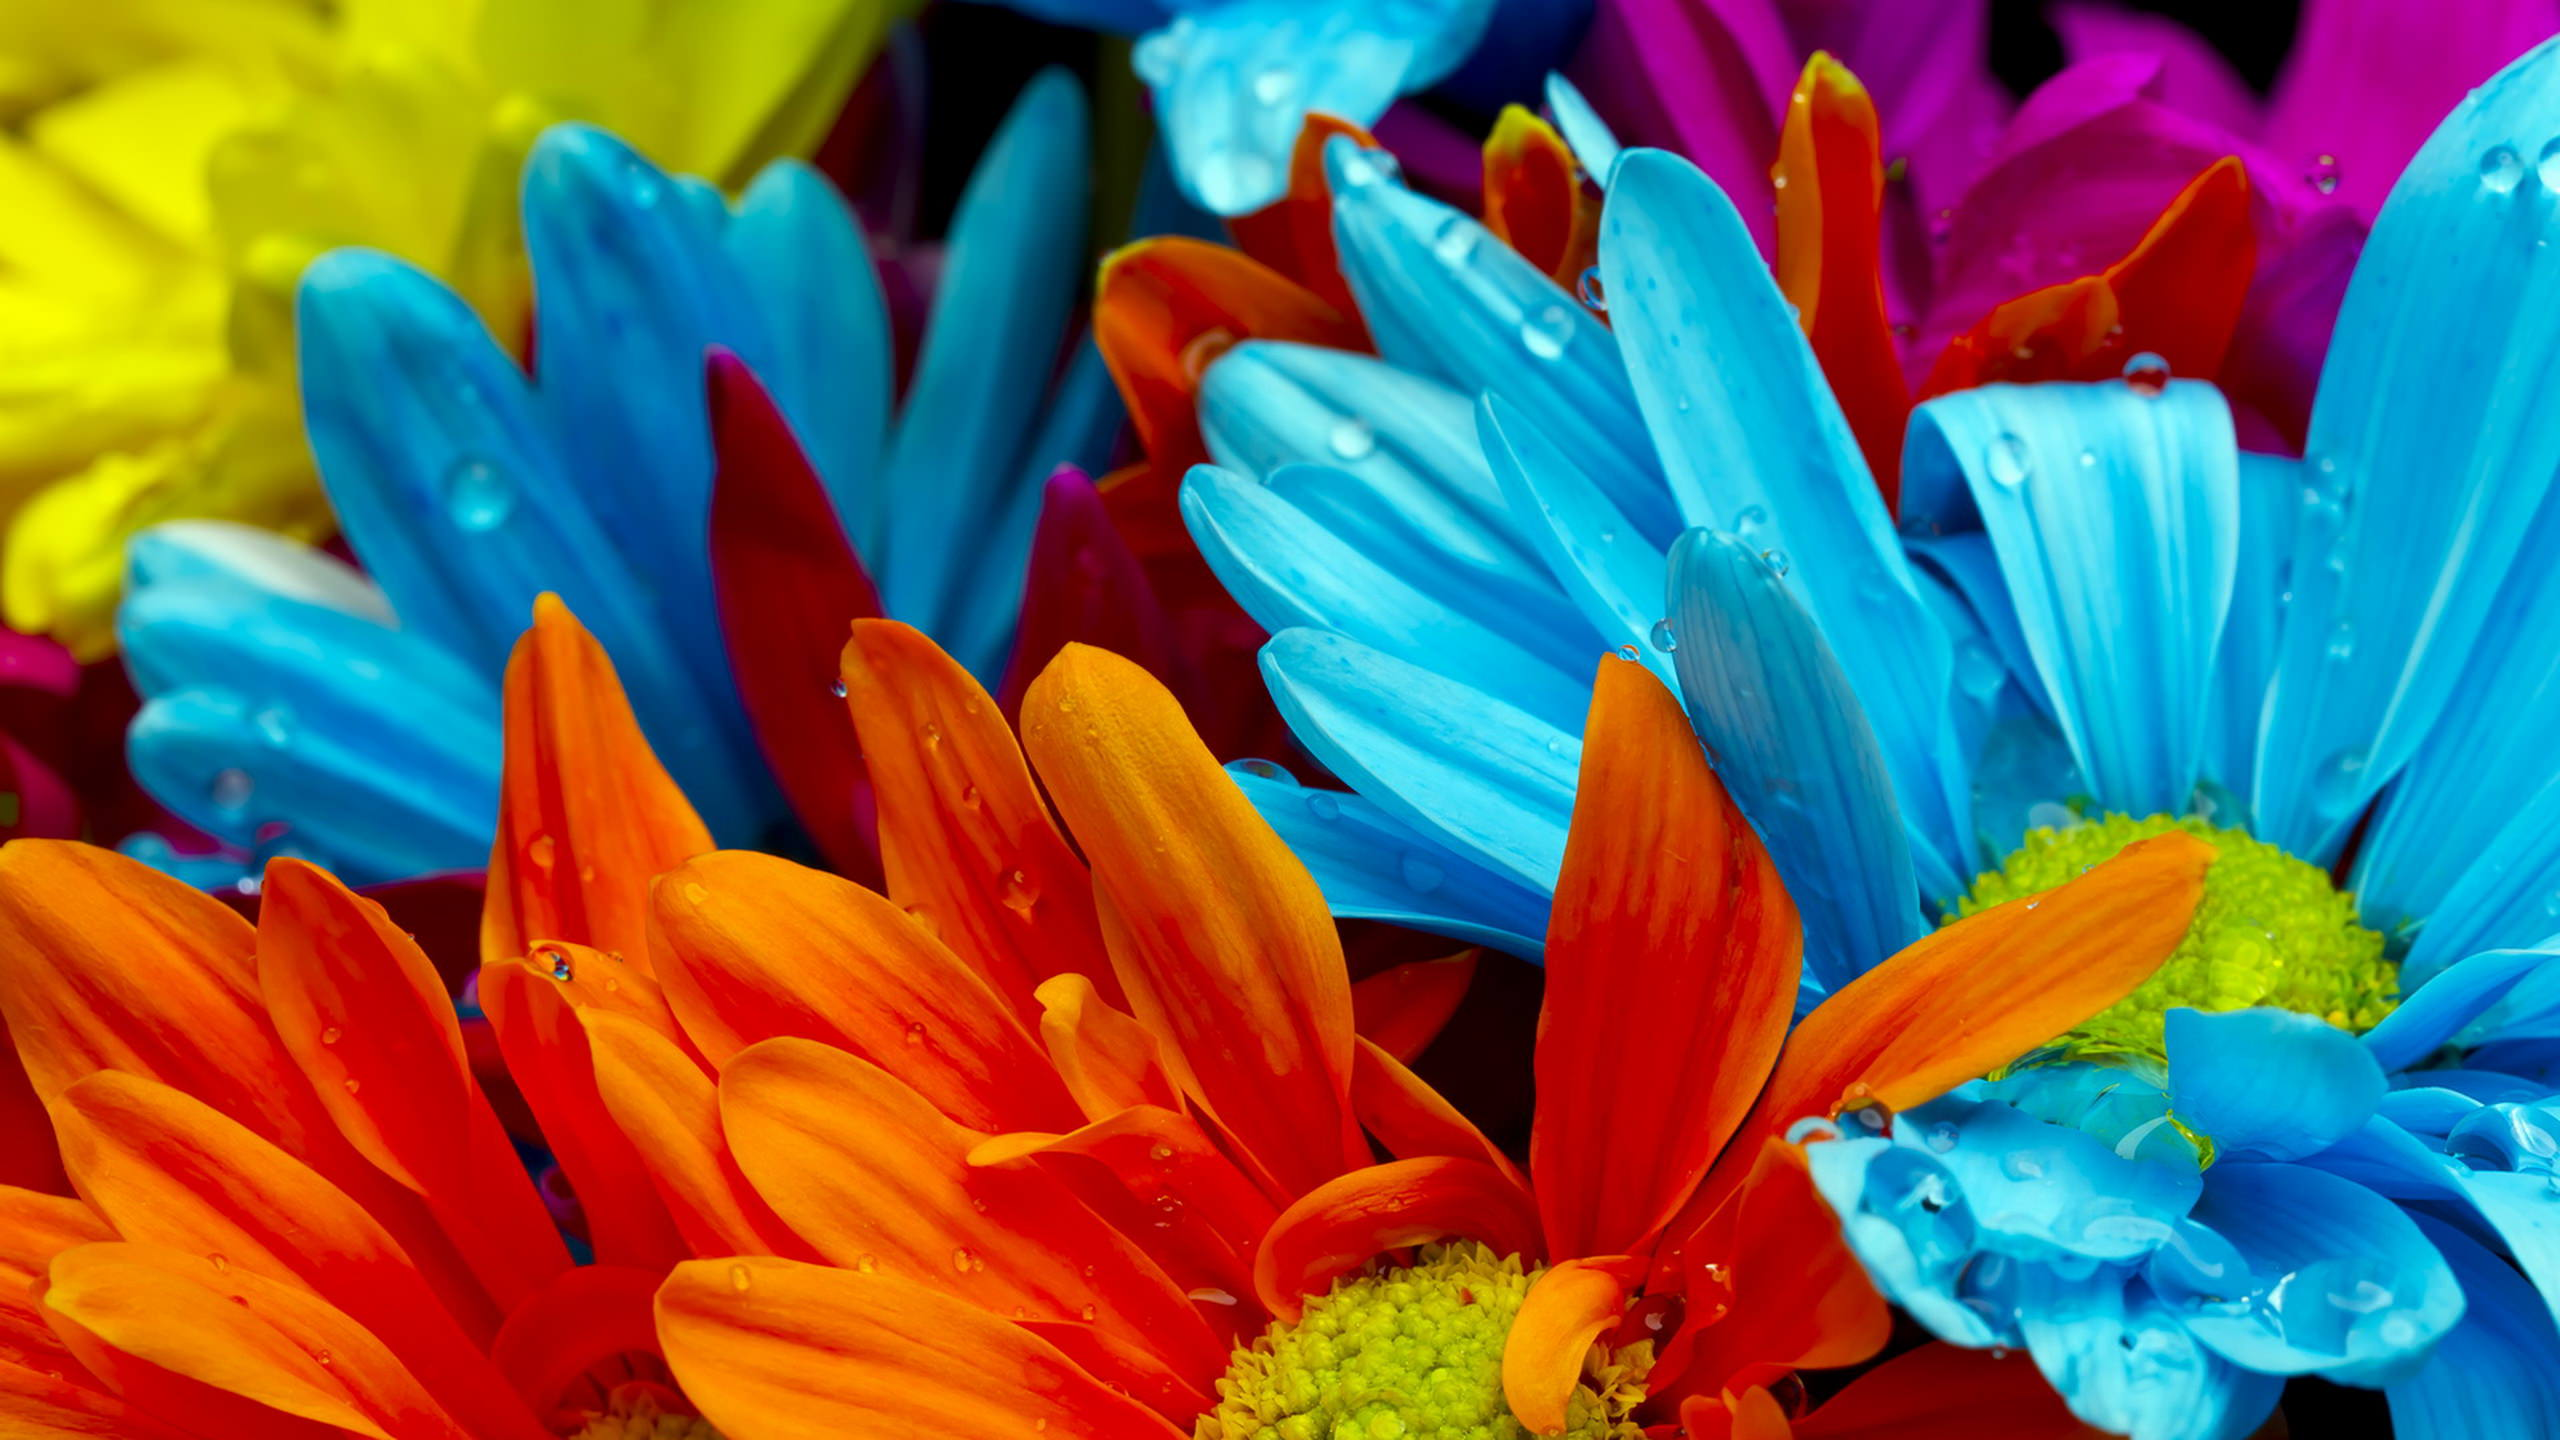 Colorful Daisy Flowers Background